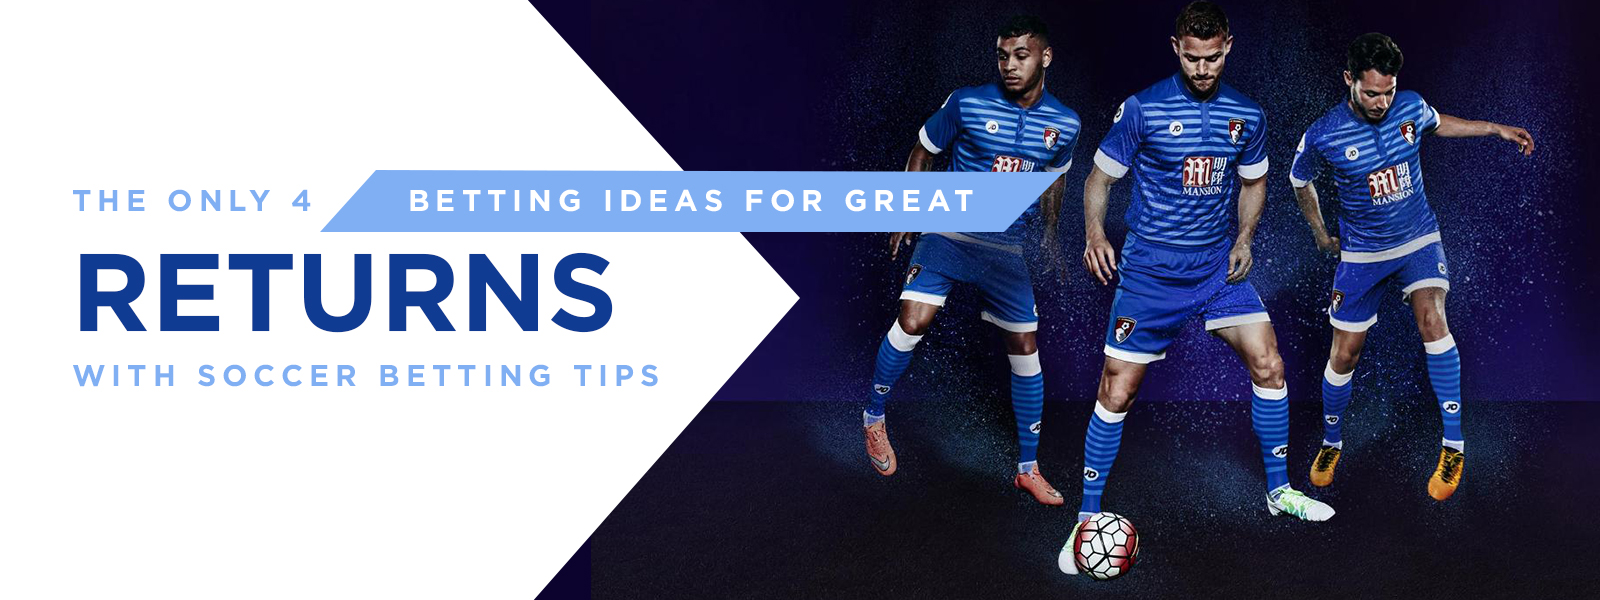 Top 3 Strategies To Use With Soccer Betting Tips For Great Return